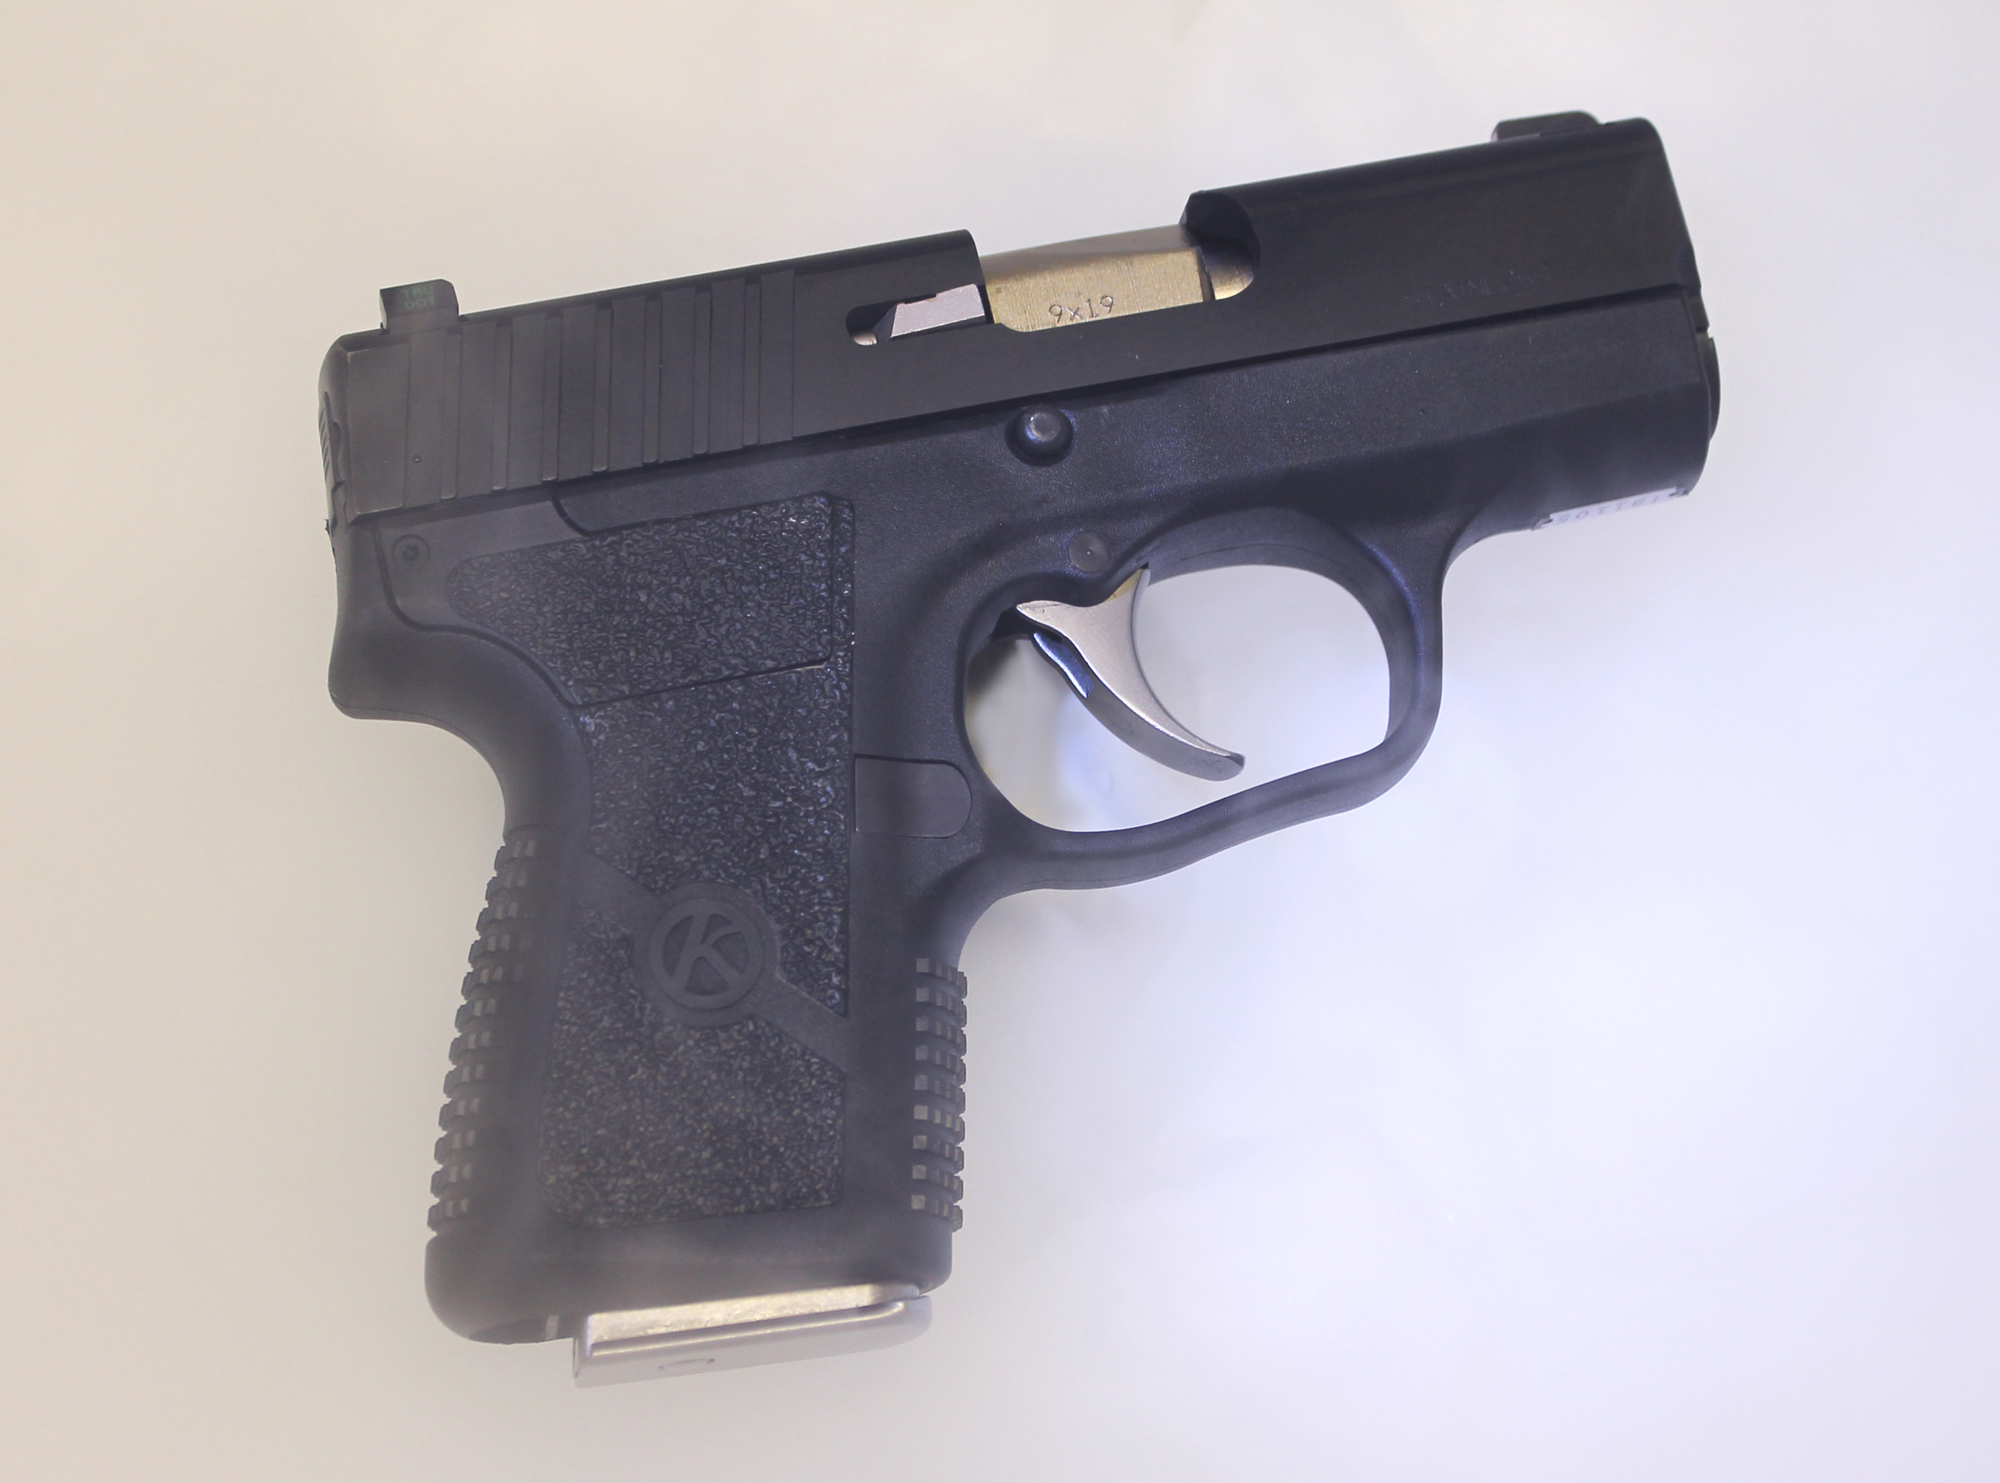 Concealed Carry Semi Automatic Handguns